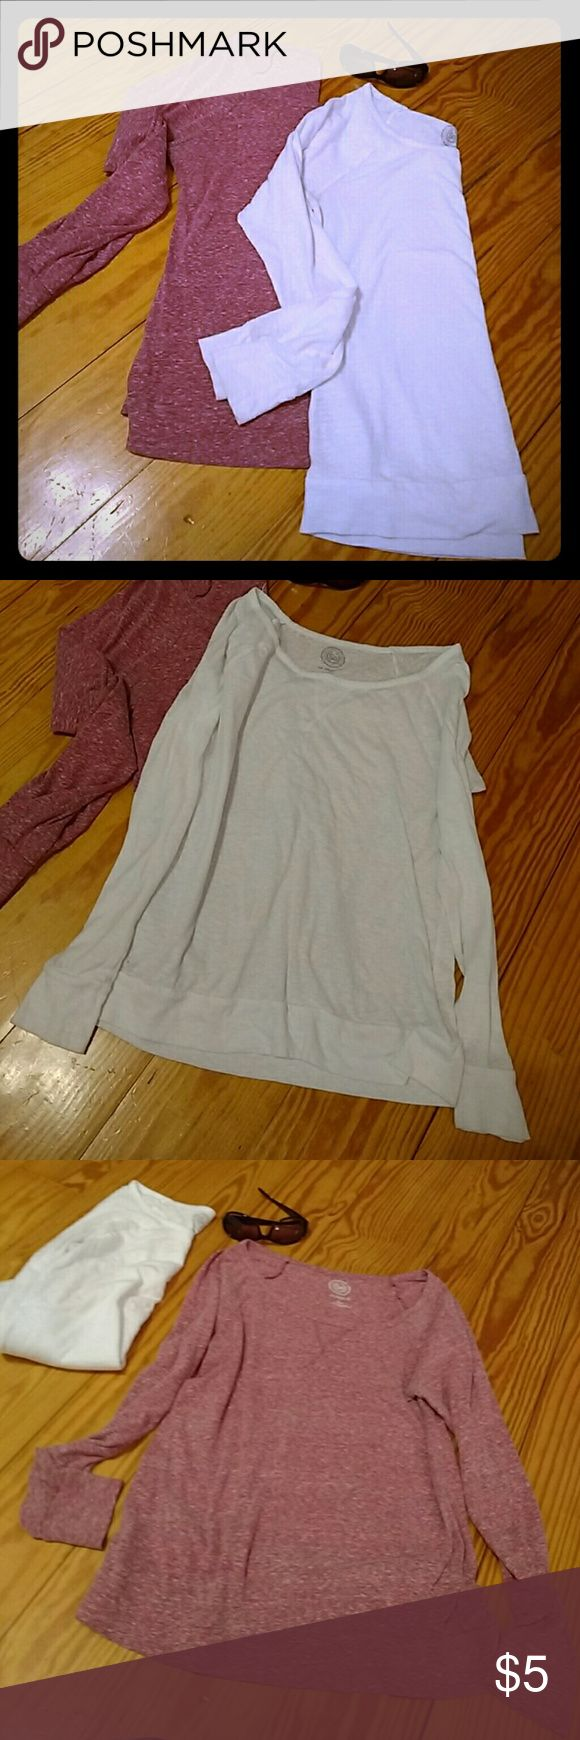 Sonoma Long sleeve Bundle Two thin sheer undershirts. Very comfy. One is a rose color and the other is white. Sized large but have been worn and washed with love. I would say they are medium. Sonoma Tops Tees - Long Sleeve